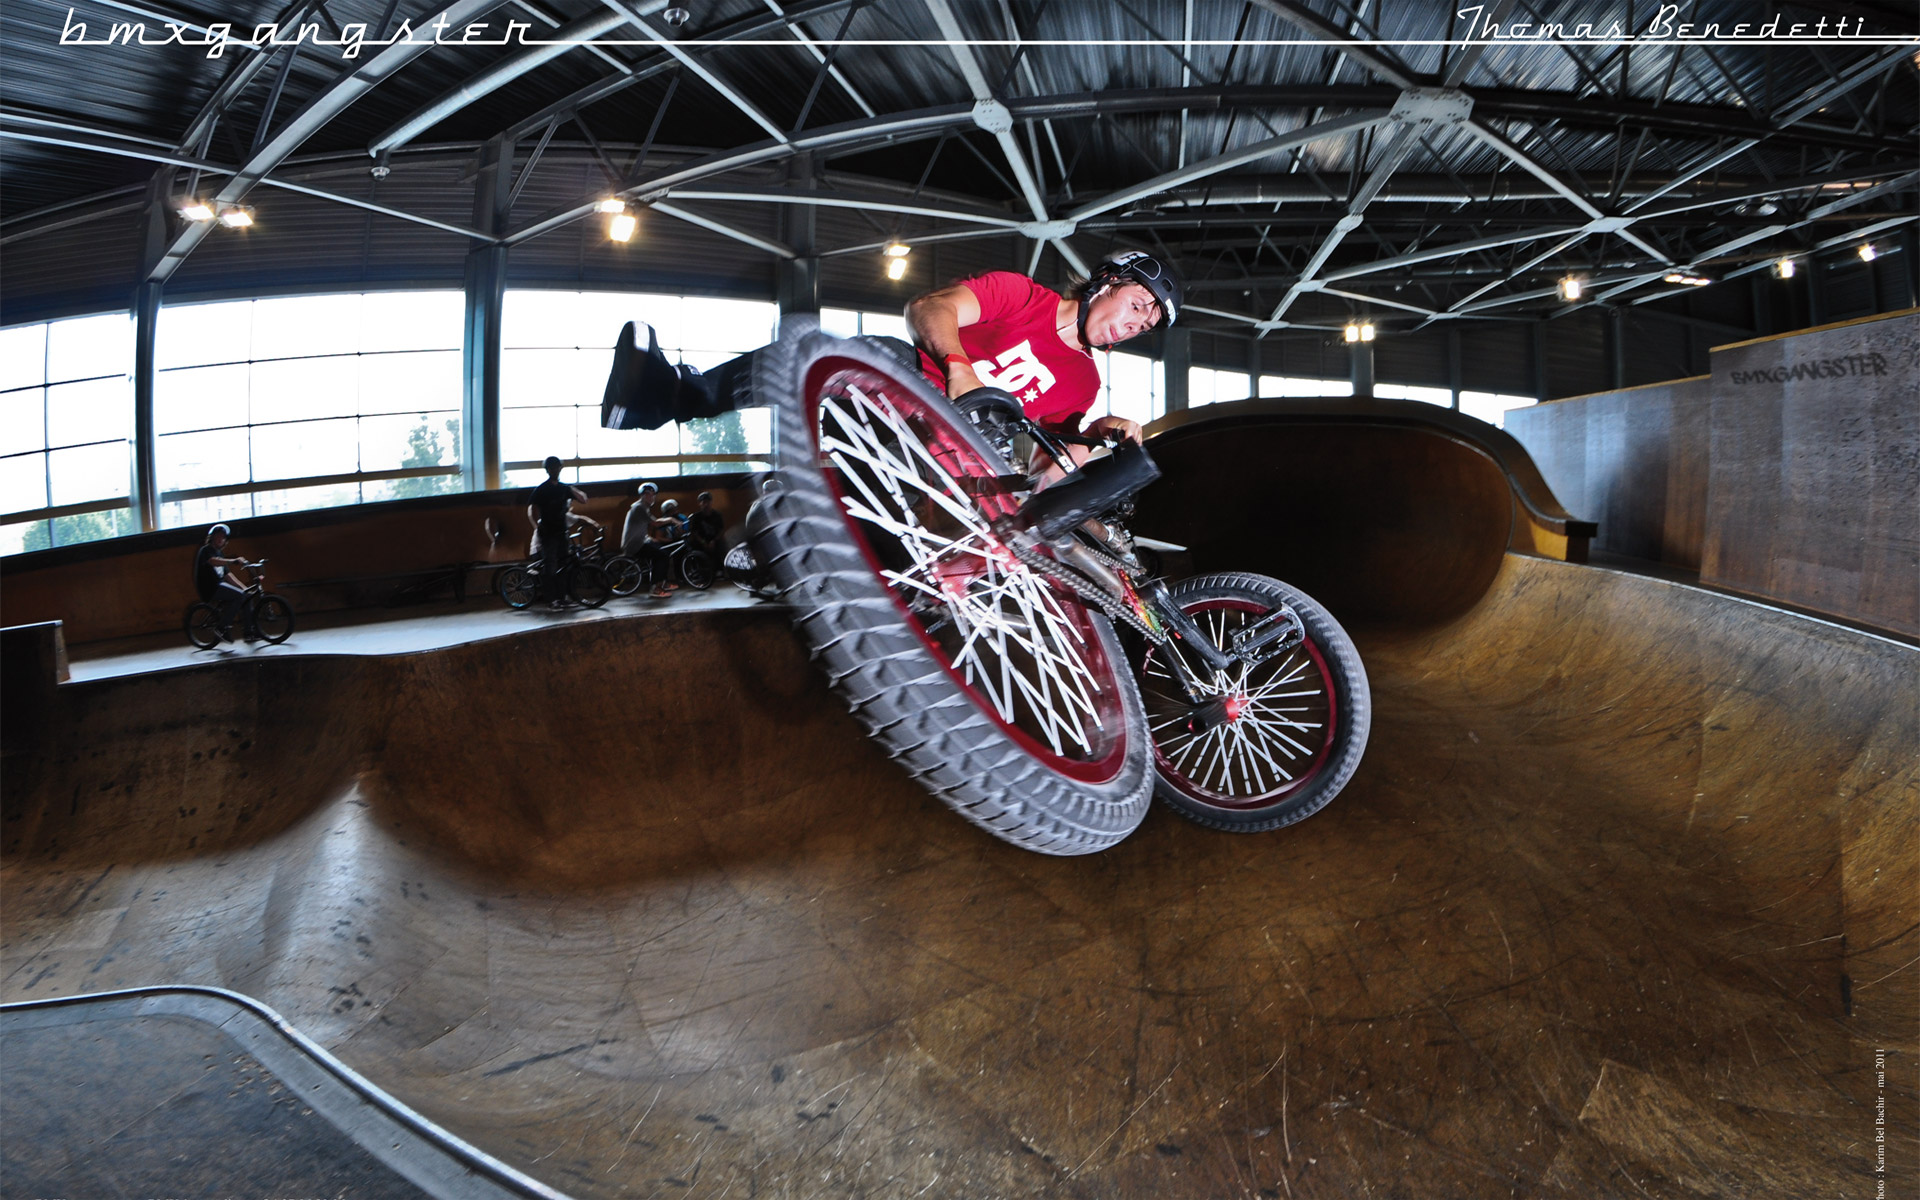 Wallpapers Sports - Leisures BMX bmxgangster team - thomas benedetti